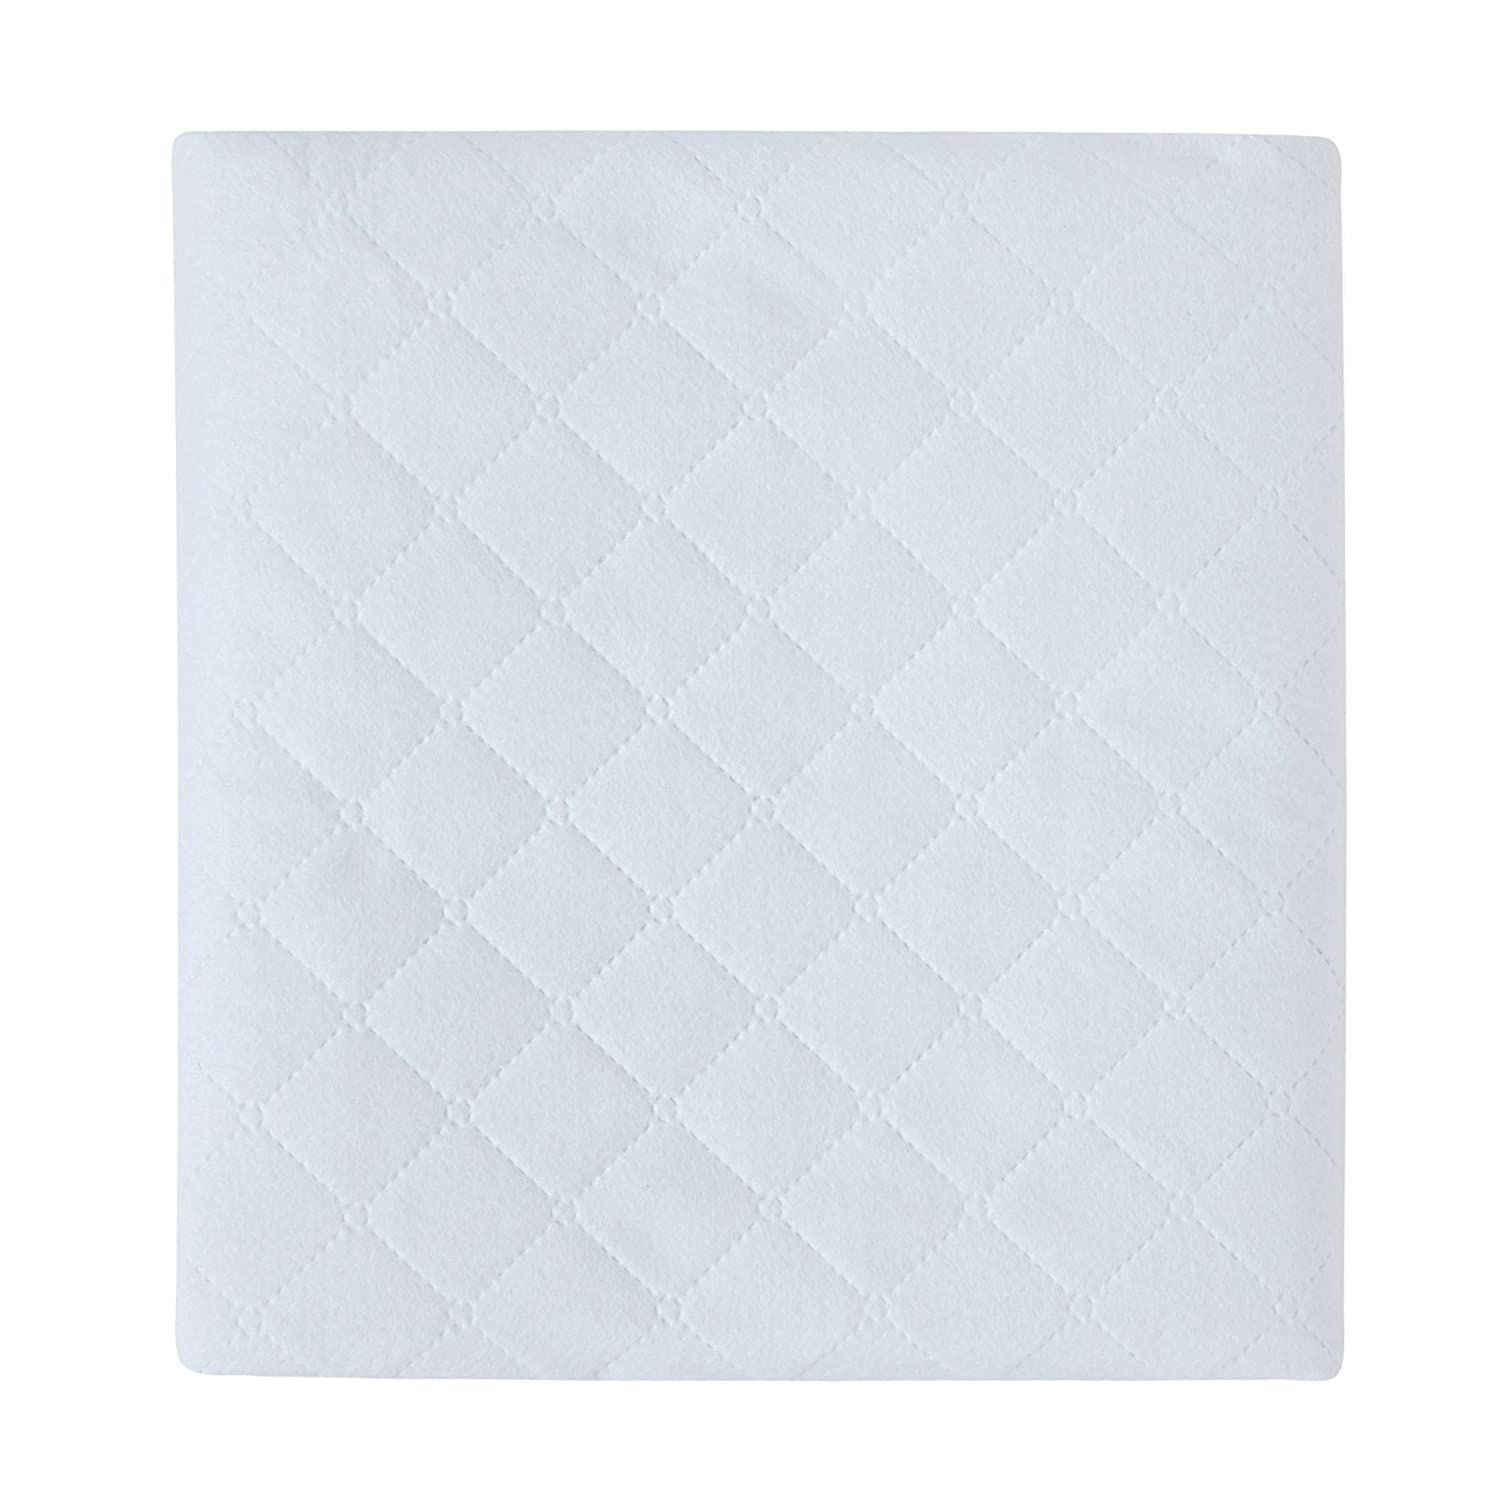 Carter's Keep Me Dry Waterproof Fitted Quilted Crib Pad, White (Discontinued by Manufacturer) Kids Line C3FQPD